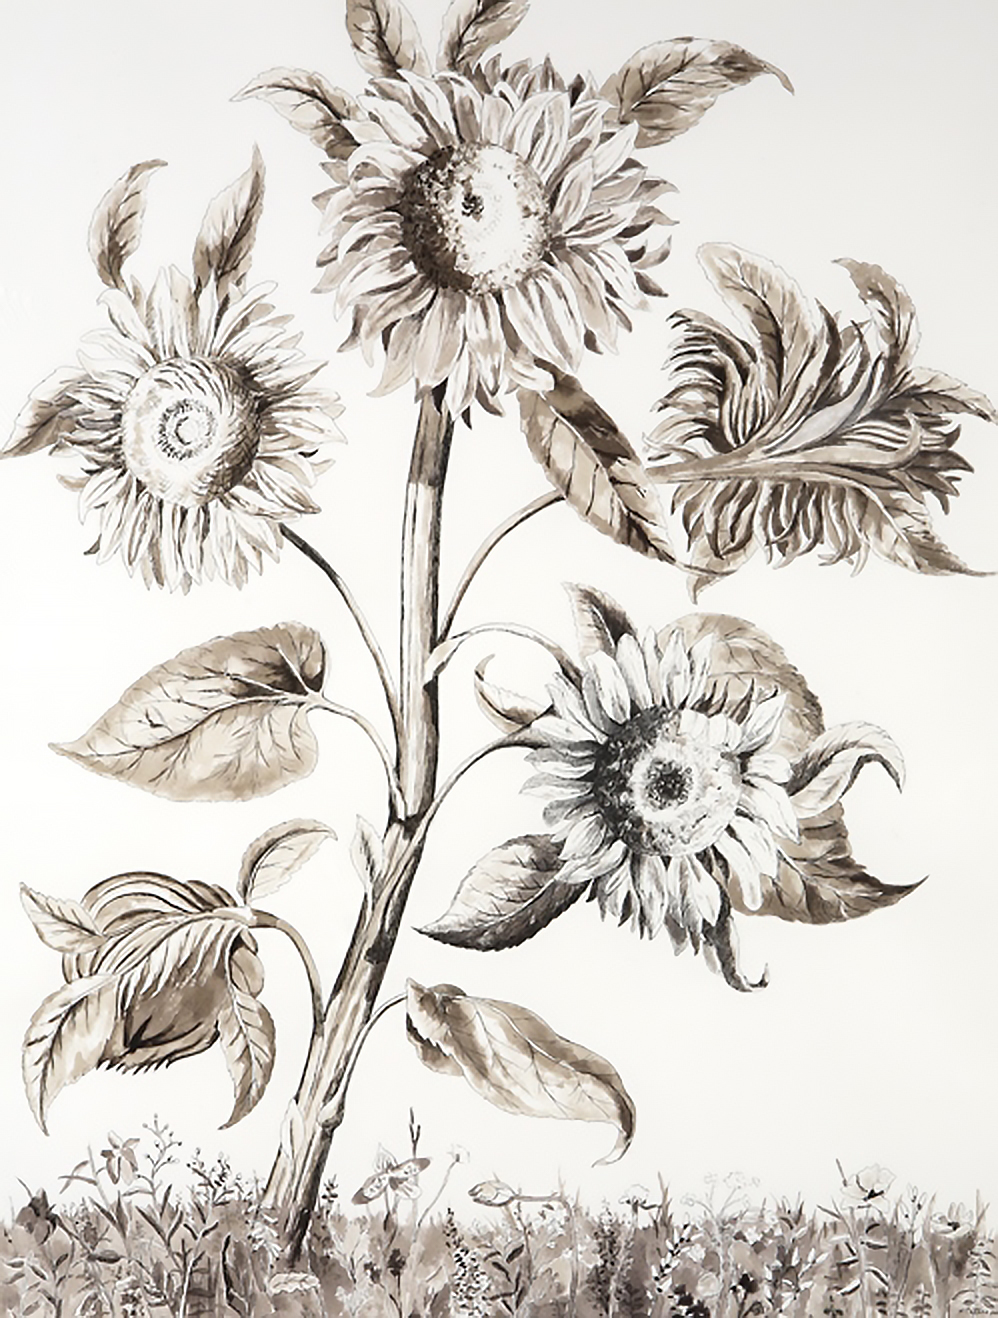 Stalk of Sunflowers, watercolor and ink washes on paper, 28.5 x 22 inches